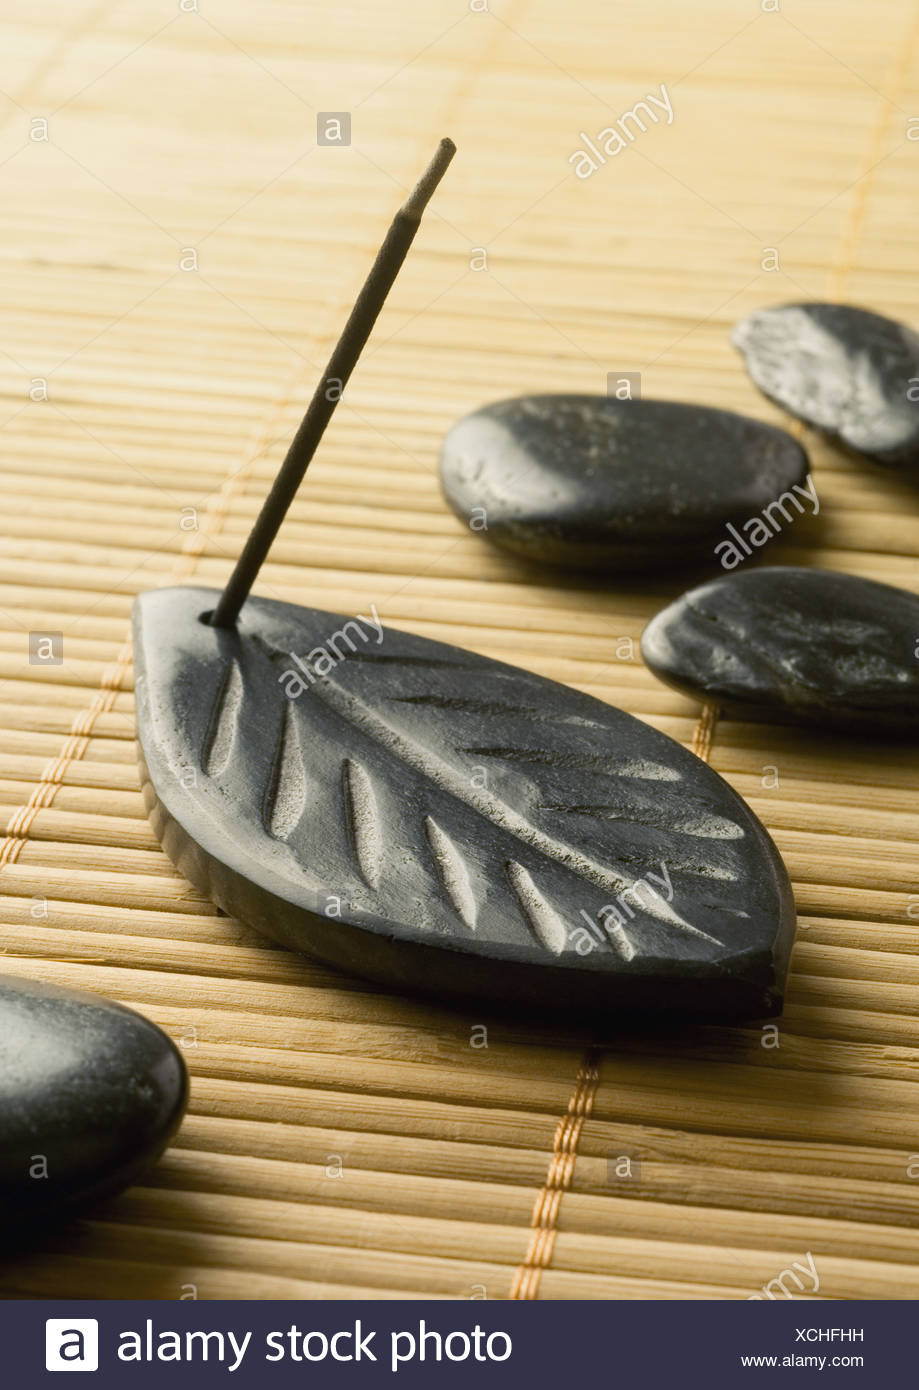 Stick of incense burning in incense holder and smooth black stones - Stock Image